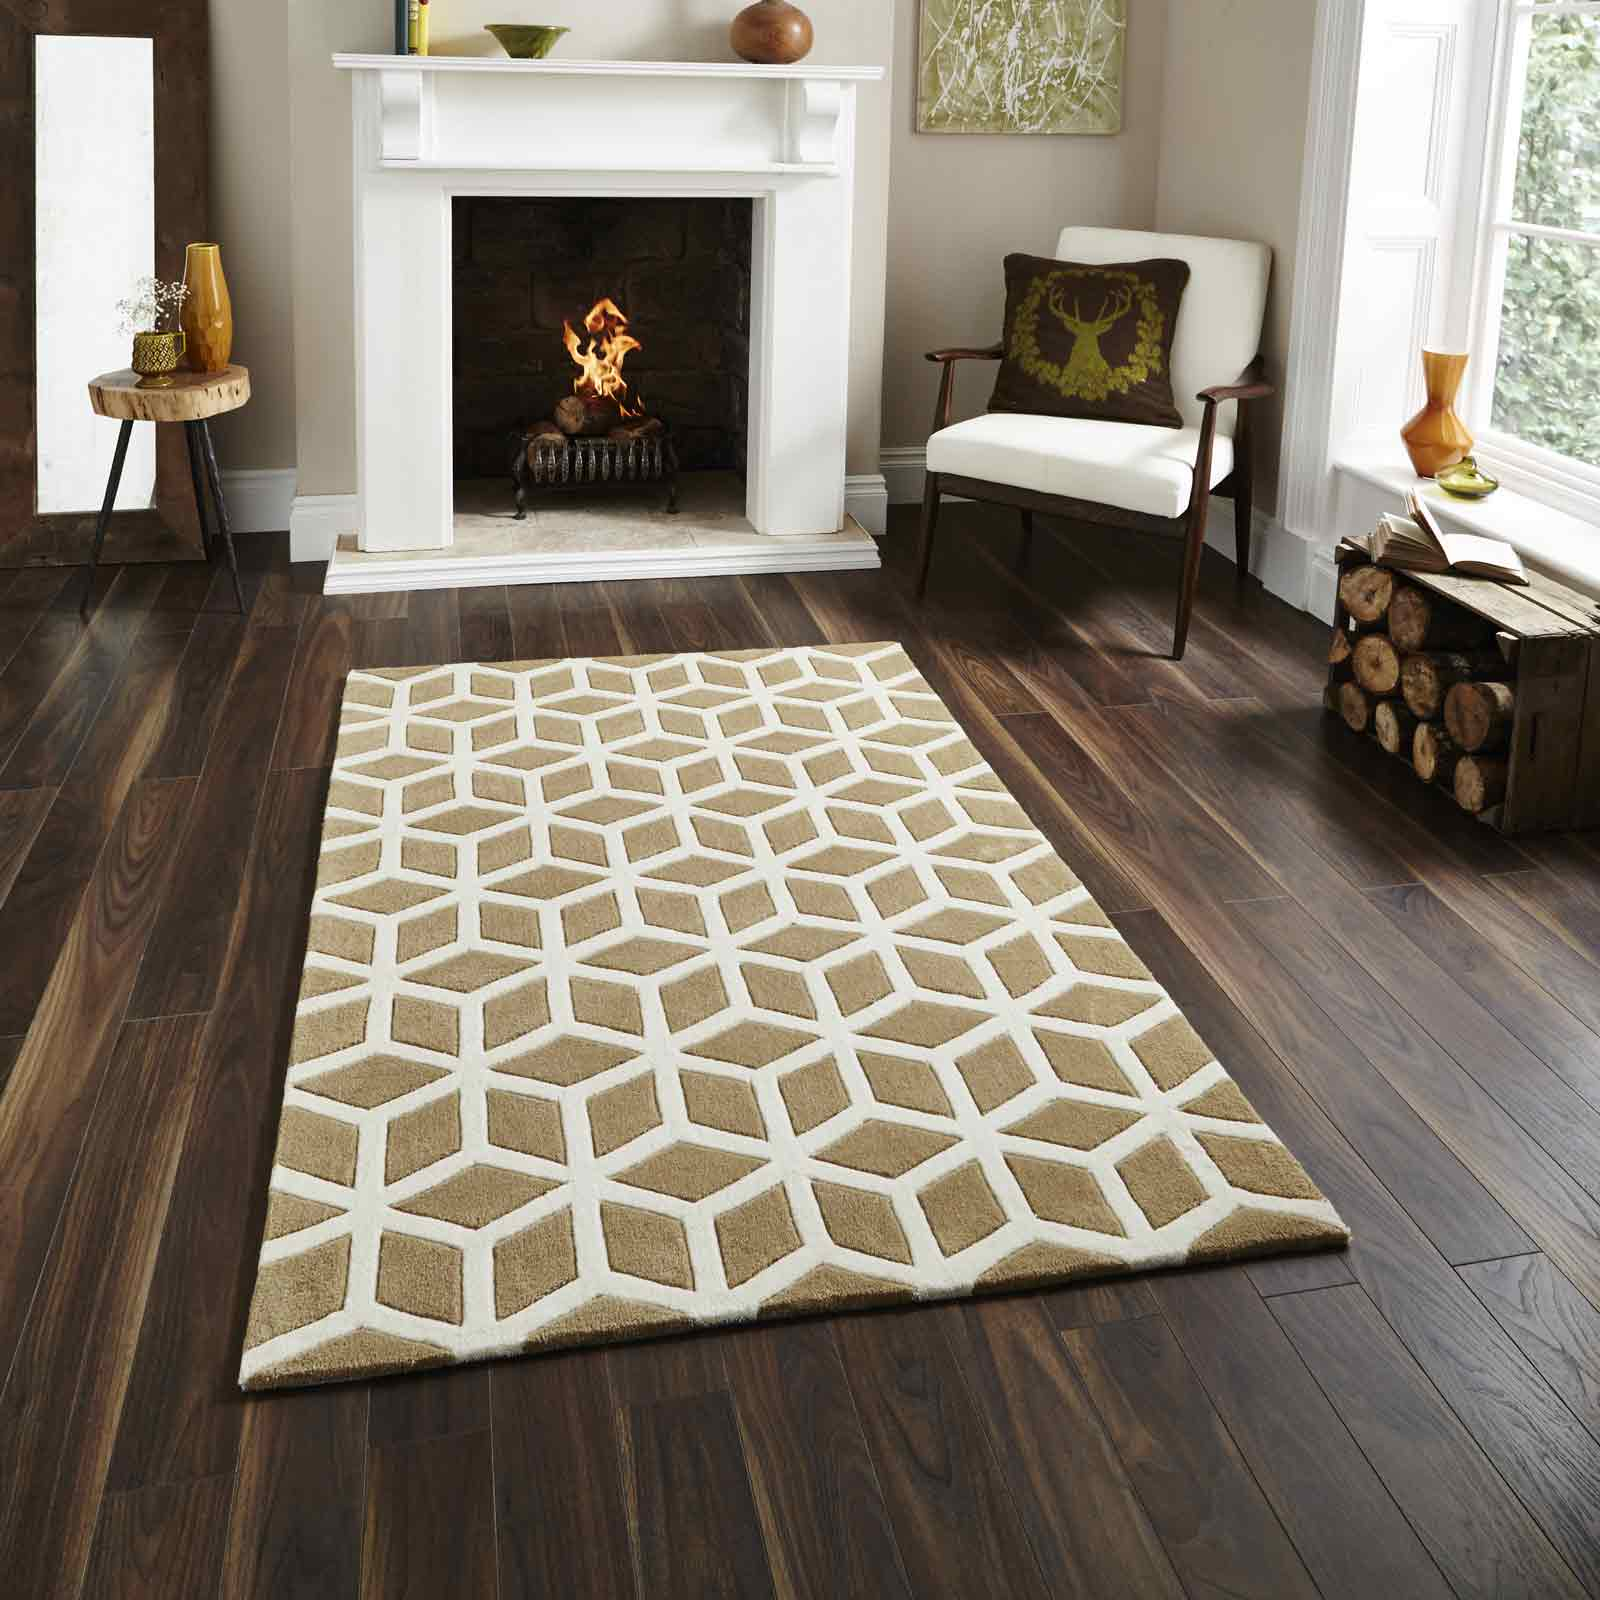 Hong Kong Rugs HK326 in Beige Cream